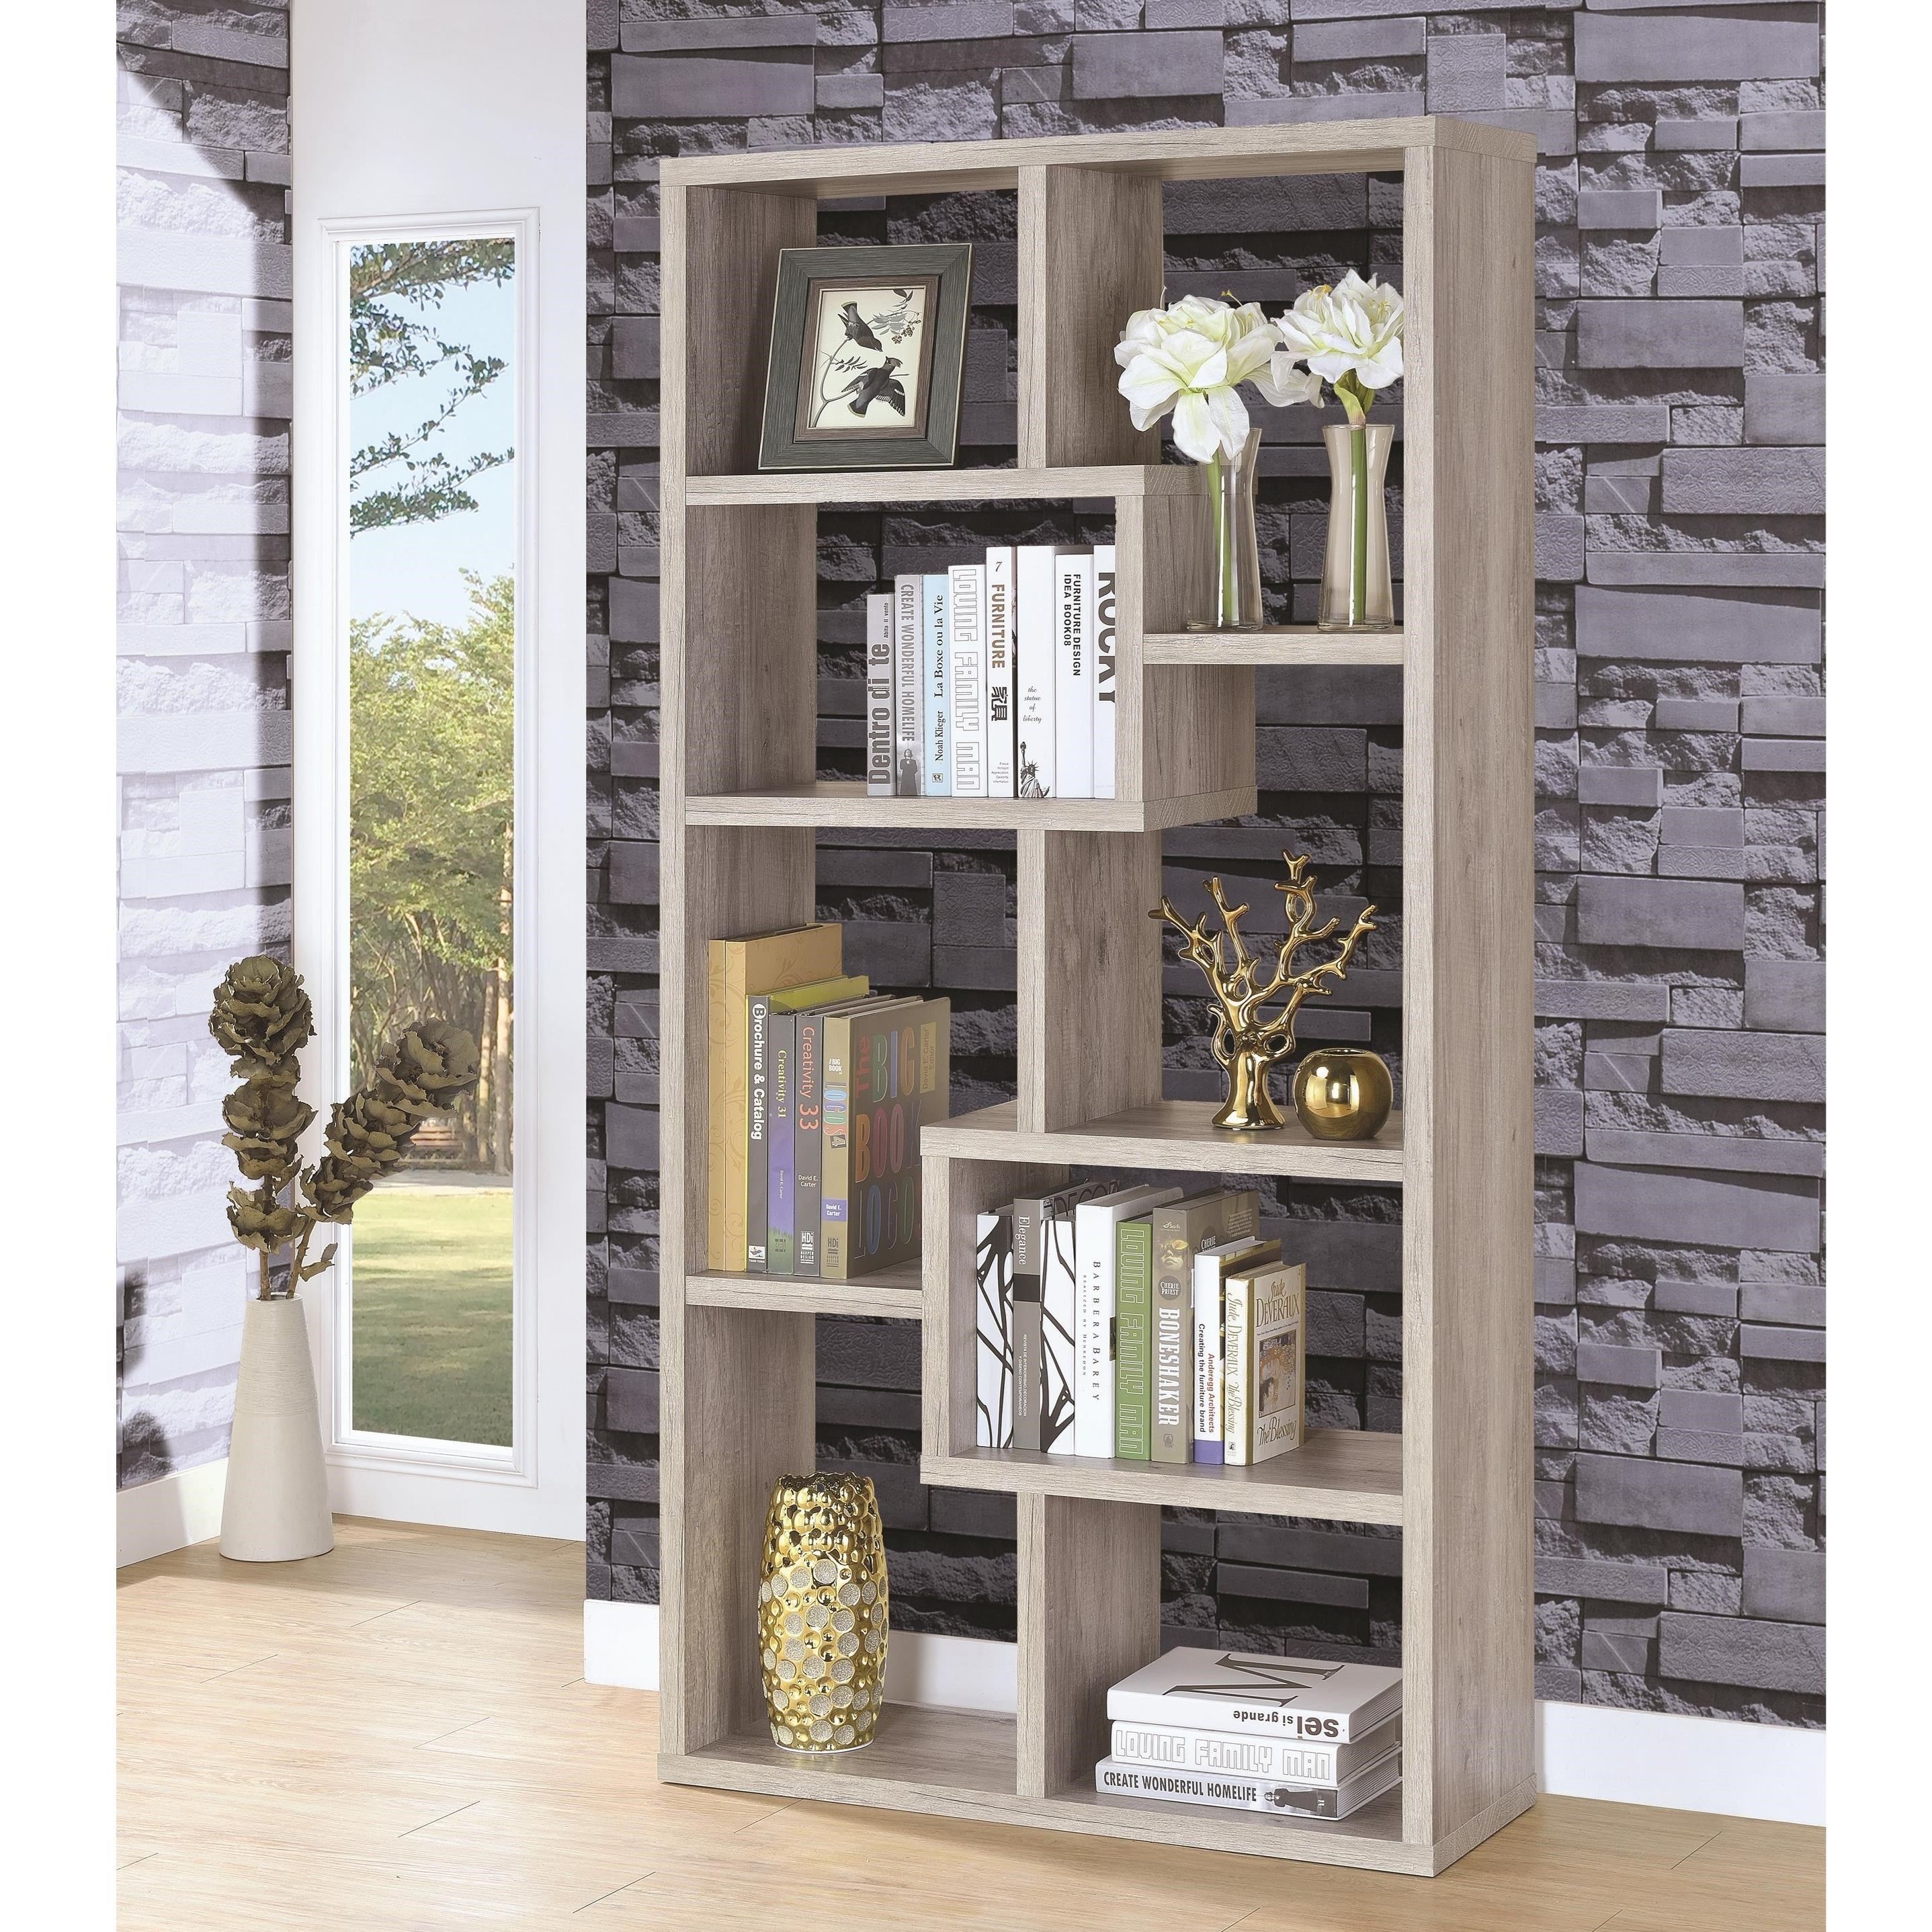 Bookcases 8 Shelf Bookcase by Coaster at Northeast Factory Direct